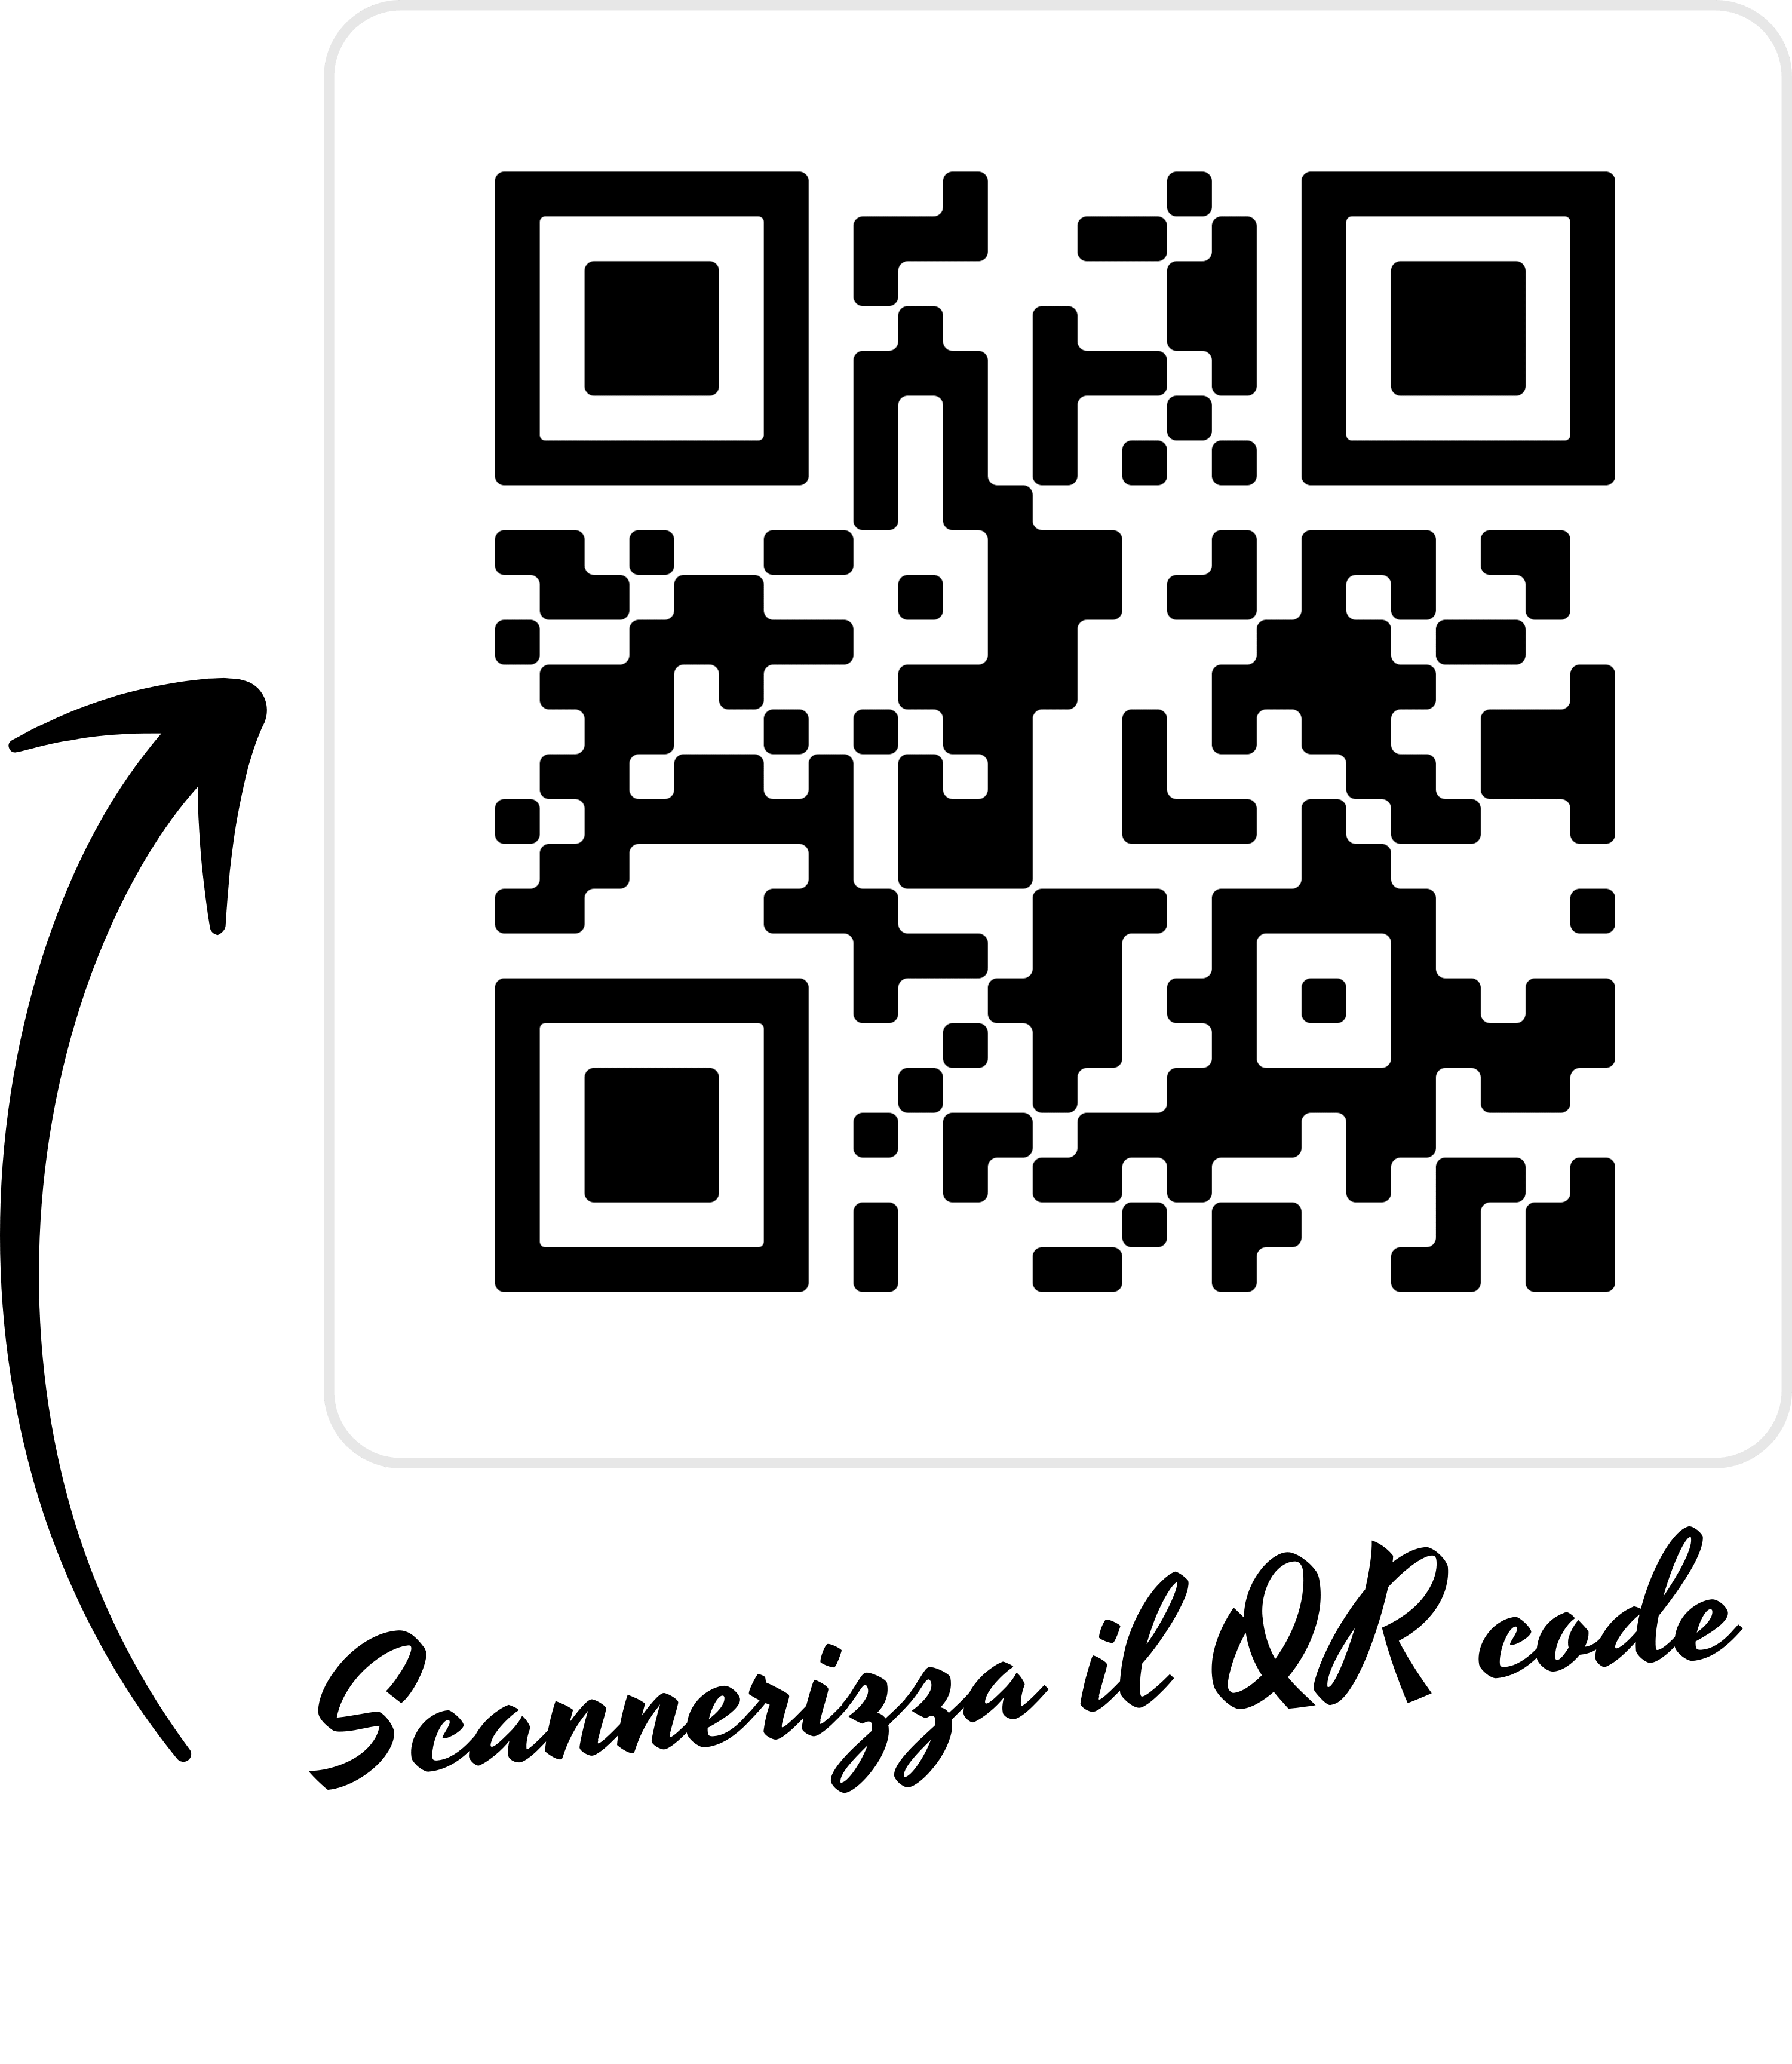 QR code GIALLONOTE